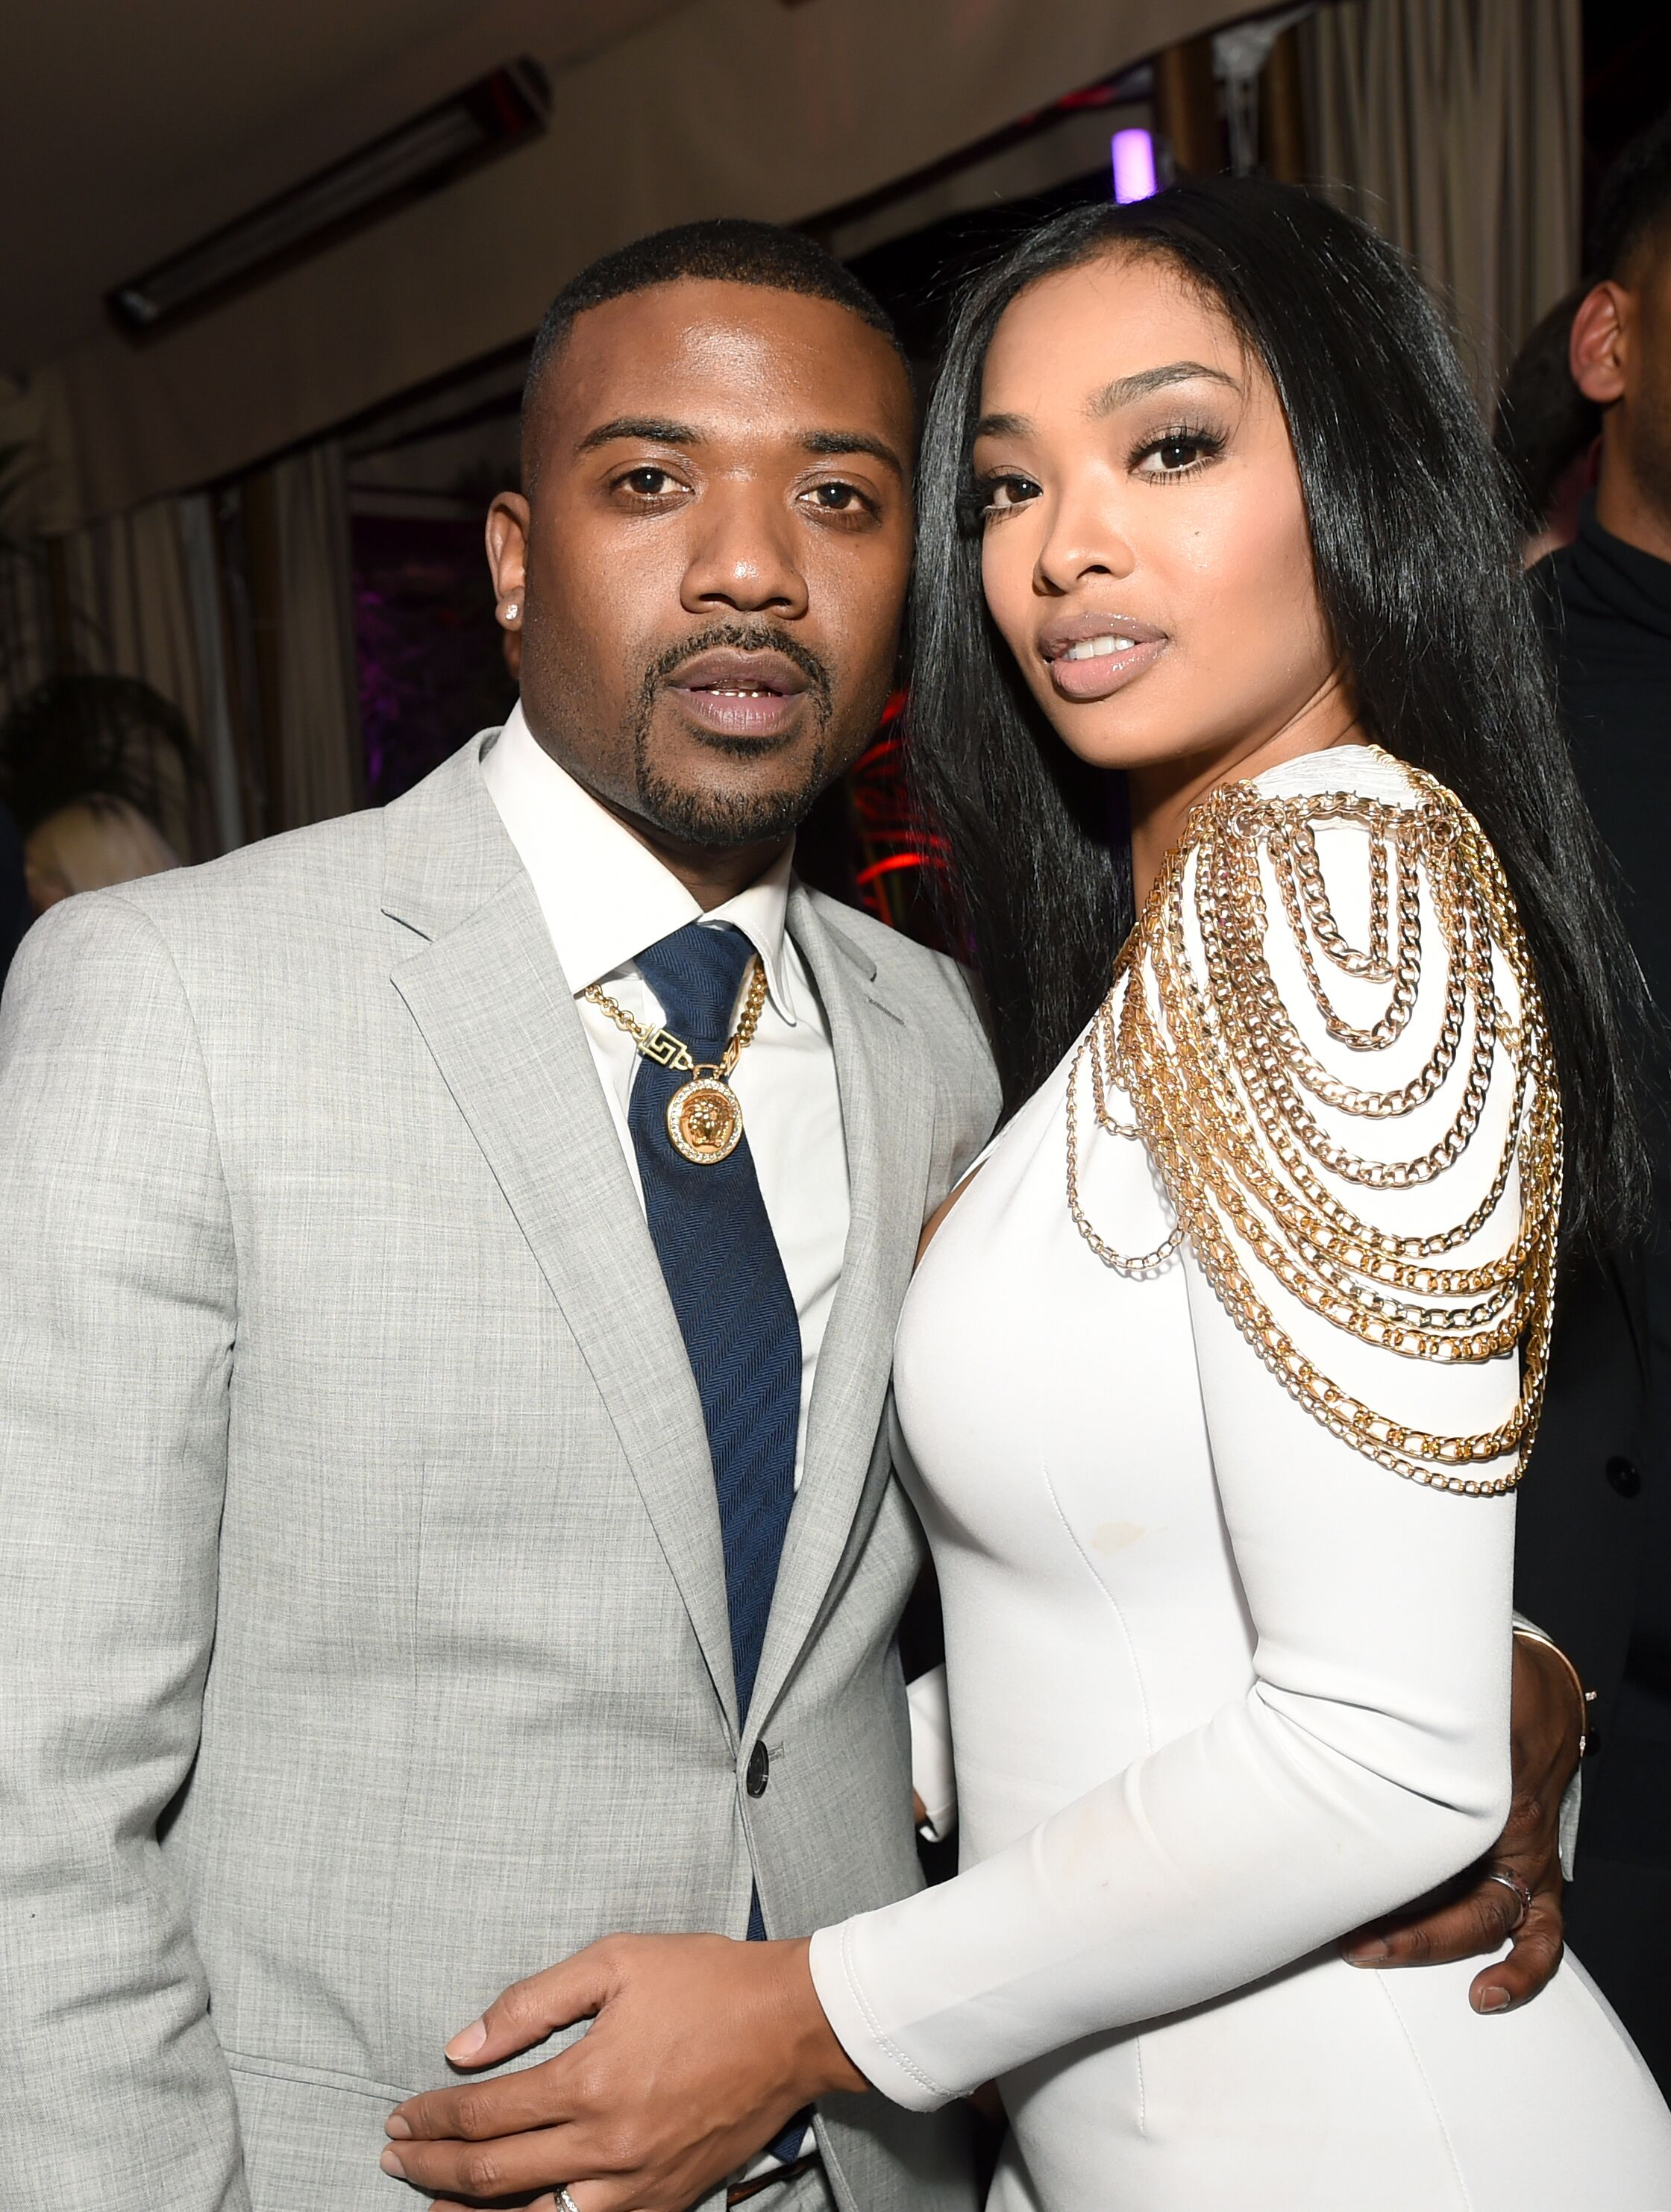 Ray J and Princess Love attend a formal event | Source: Getty Images/GlobalImagesUkraine